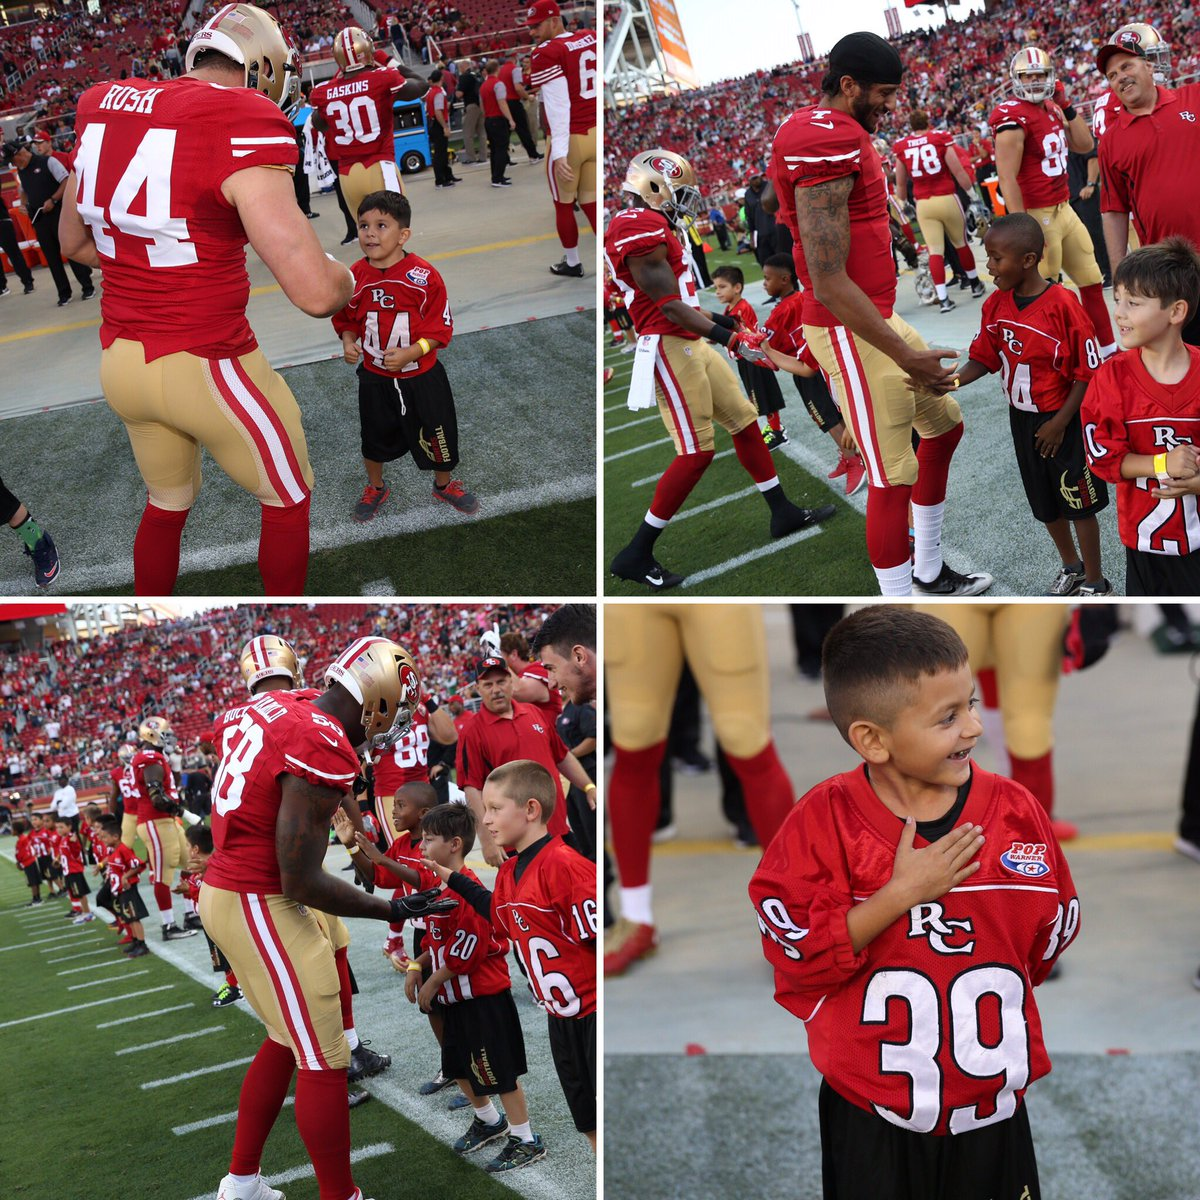 49ers youth football on twitter 49ers meet 49ers the redwood city 49ers youth football on twitter 49ers meet 49ers the redwood city 49ers tiny mites were a hit with their 49ers idols tonight letsplayfootball m4hsunfo